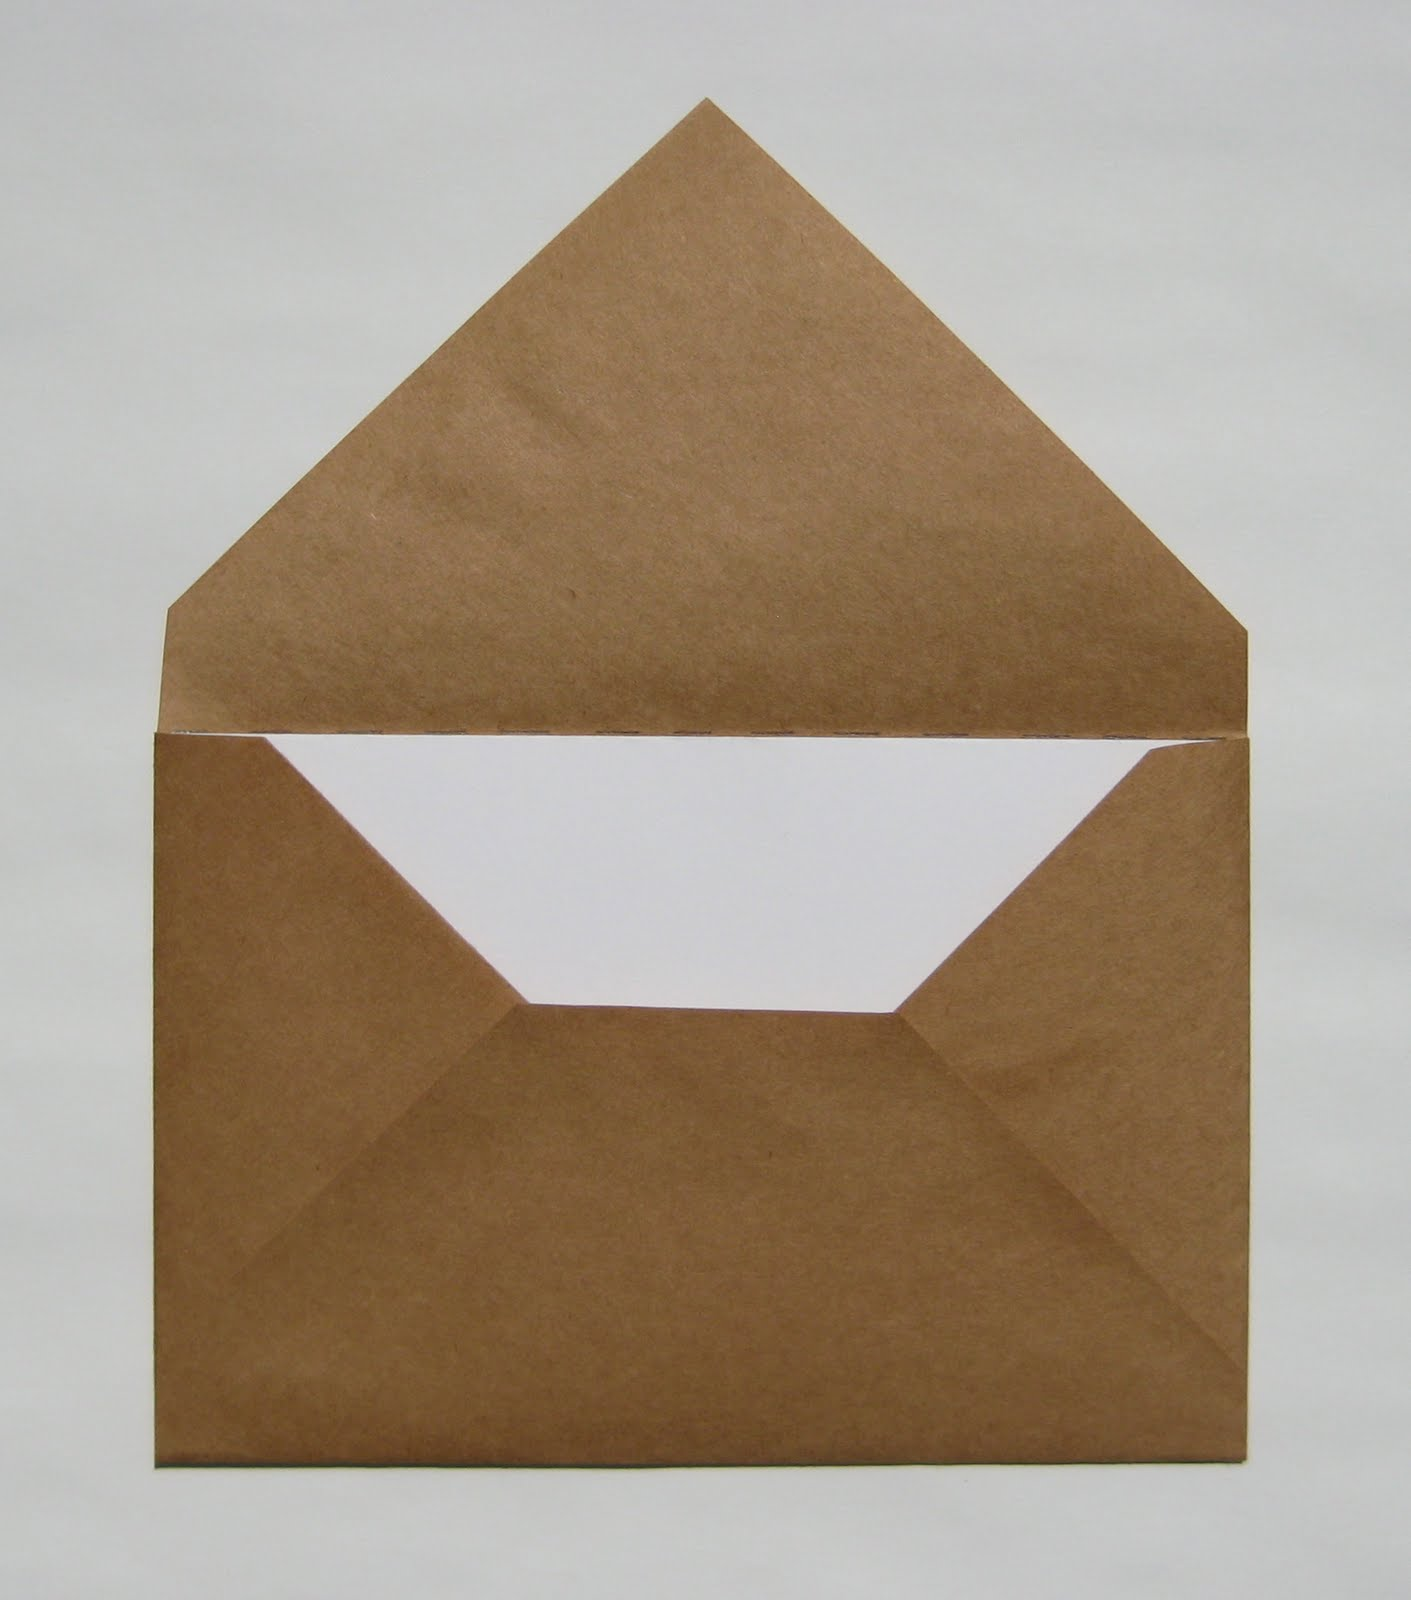 Easy envelopes for handmade cards teachkidsart easy envelopes for handmade cards kristyandbryce Gallery